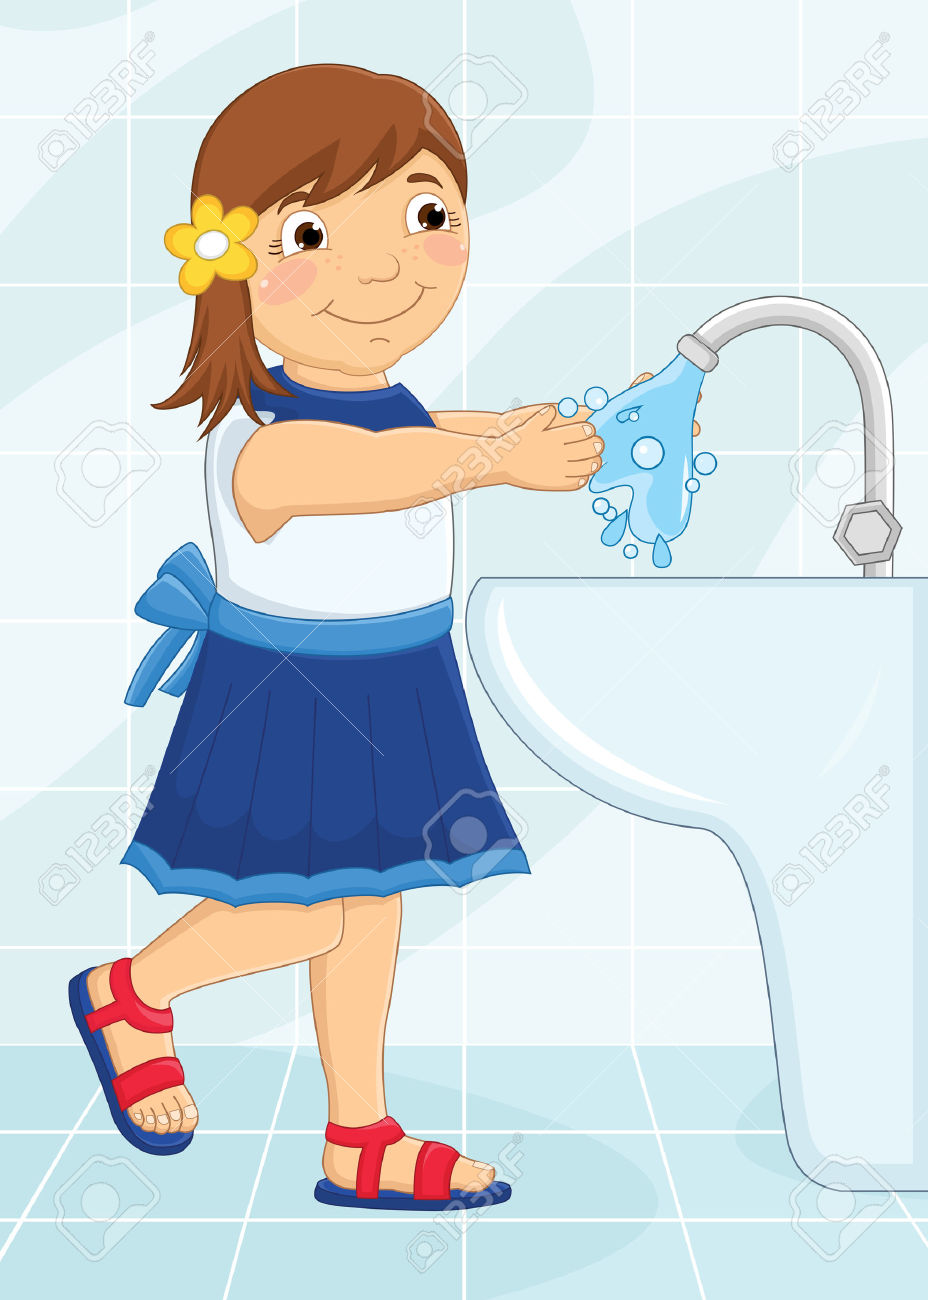 Washing hands with soap clipart 4 » Clipart Station.